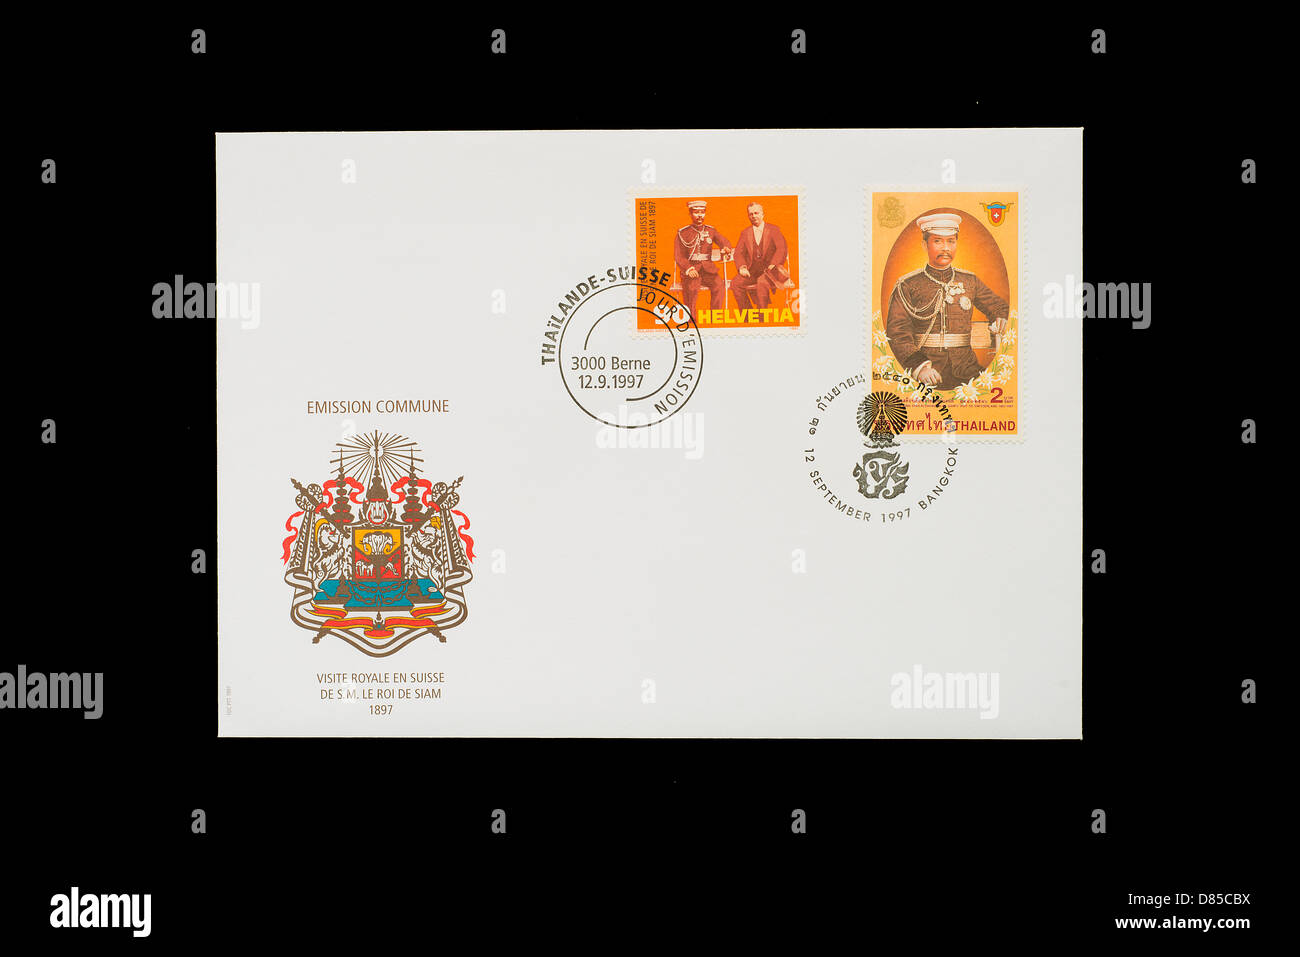 first day cover of common philatelic issue of two stamps swiss and thailandese - Stock Image